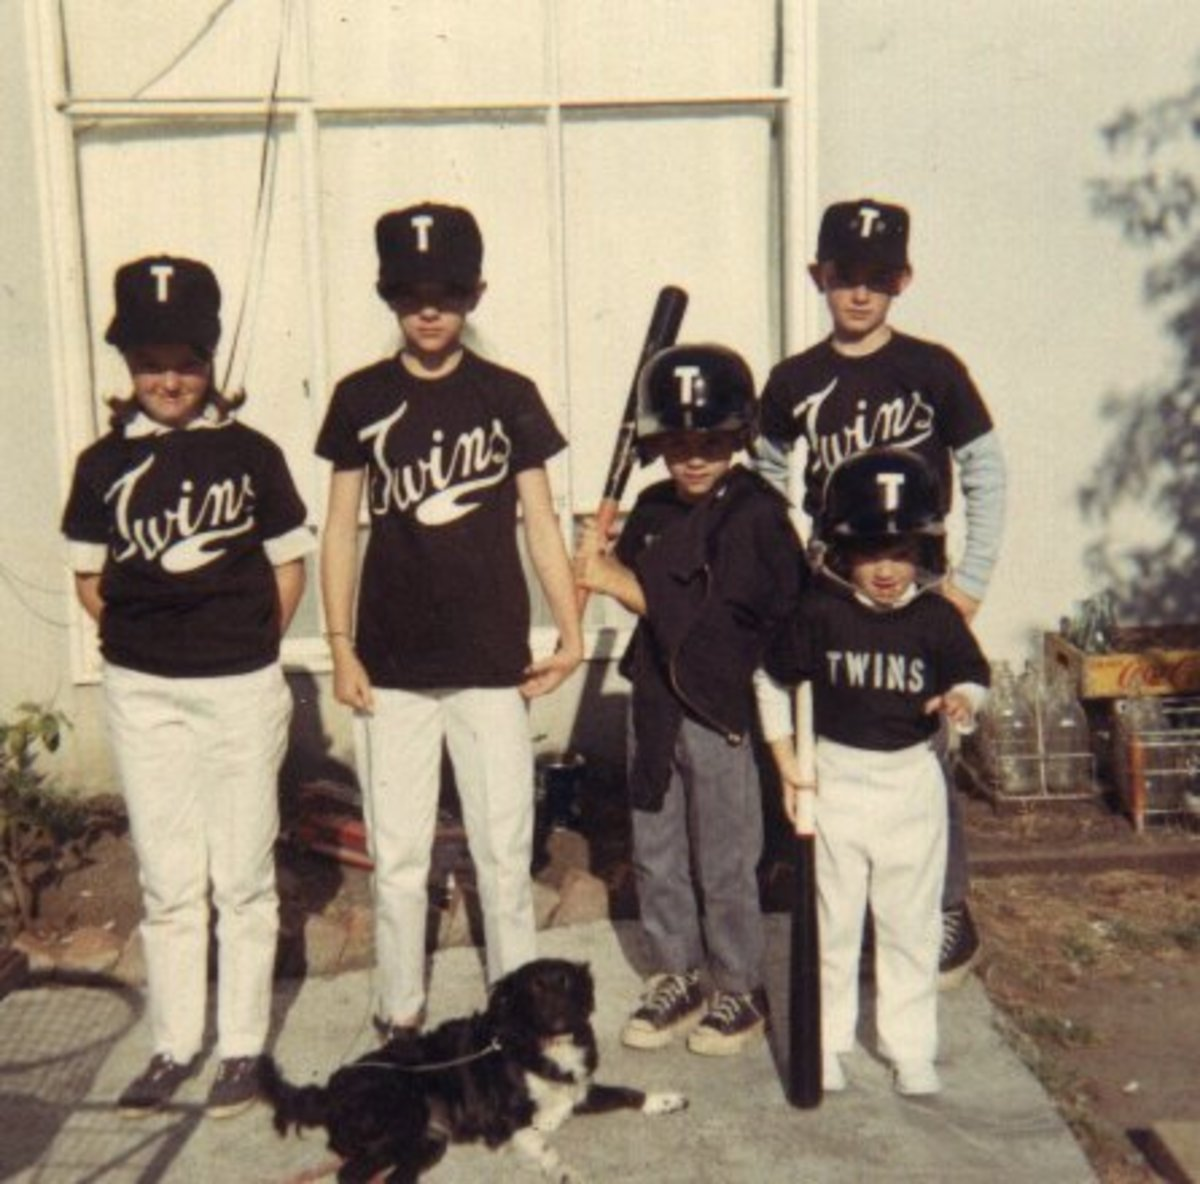 My family ready for opening day 1968-1969.  Only my brothers got to play that day.